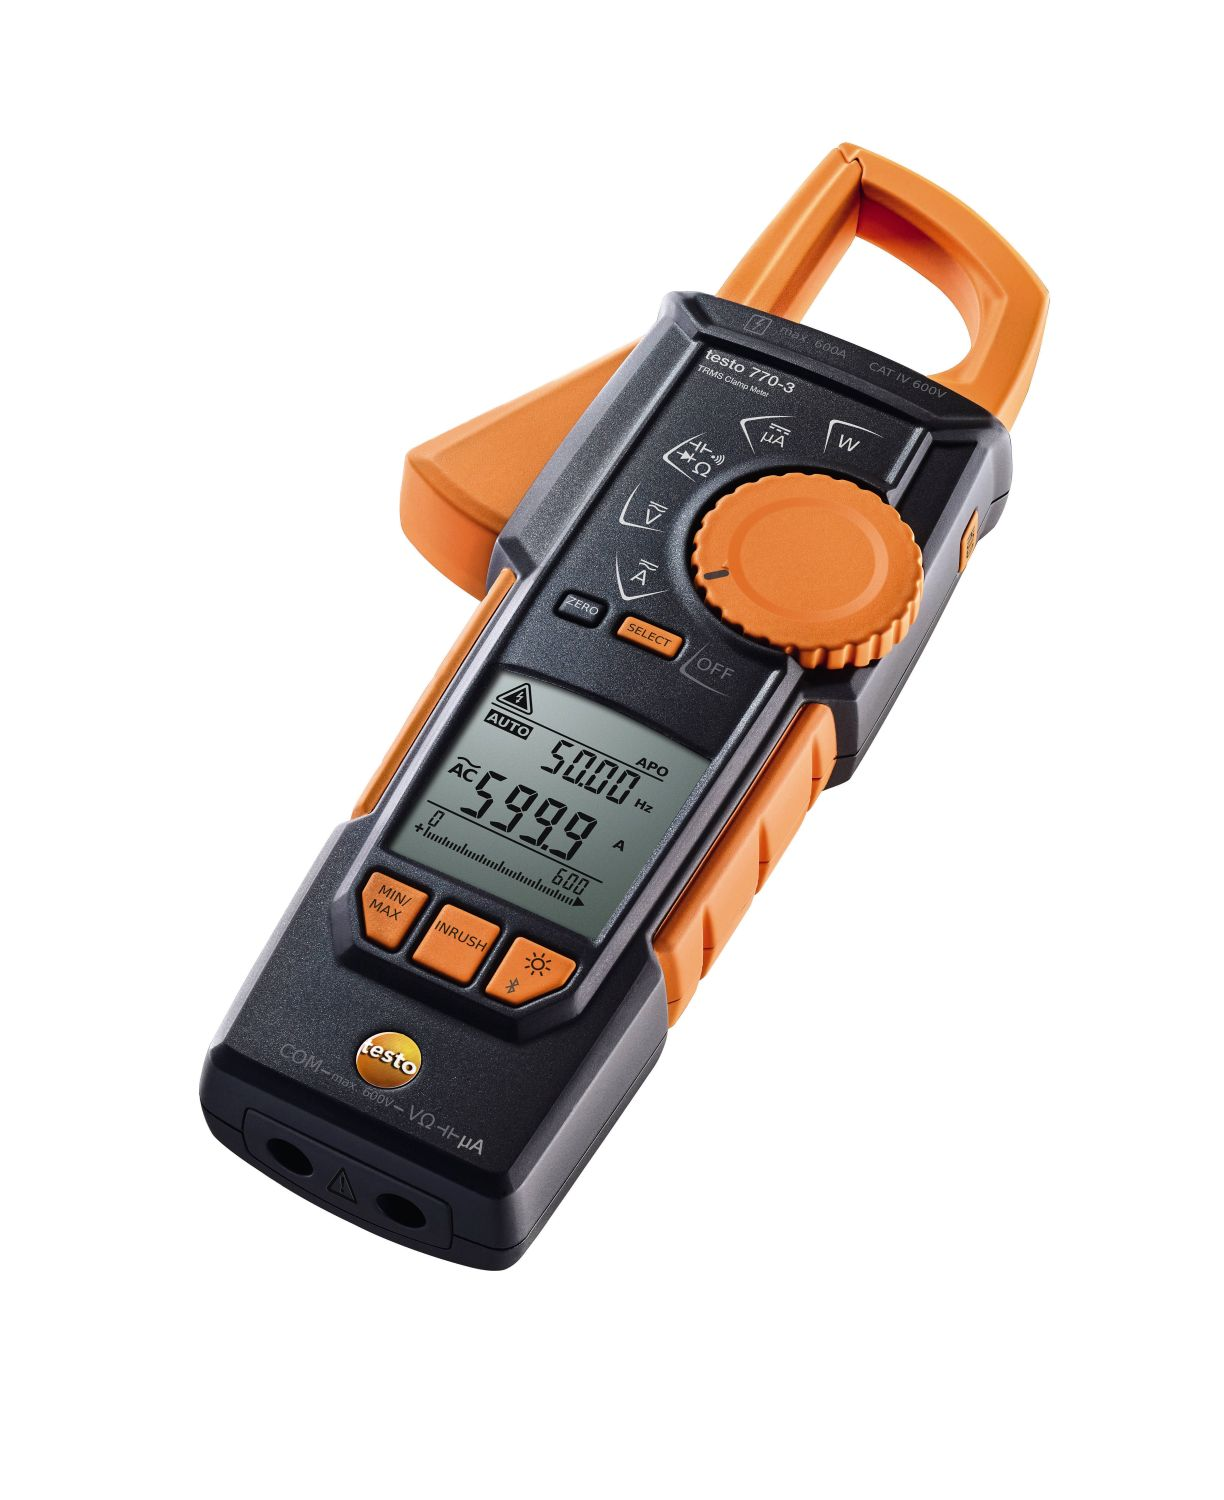 Electrical Measuring Instruments By Name : Testo hook clamp meter resistance electrical